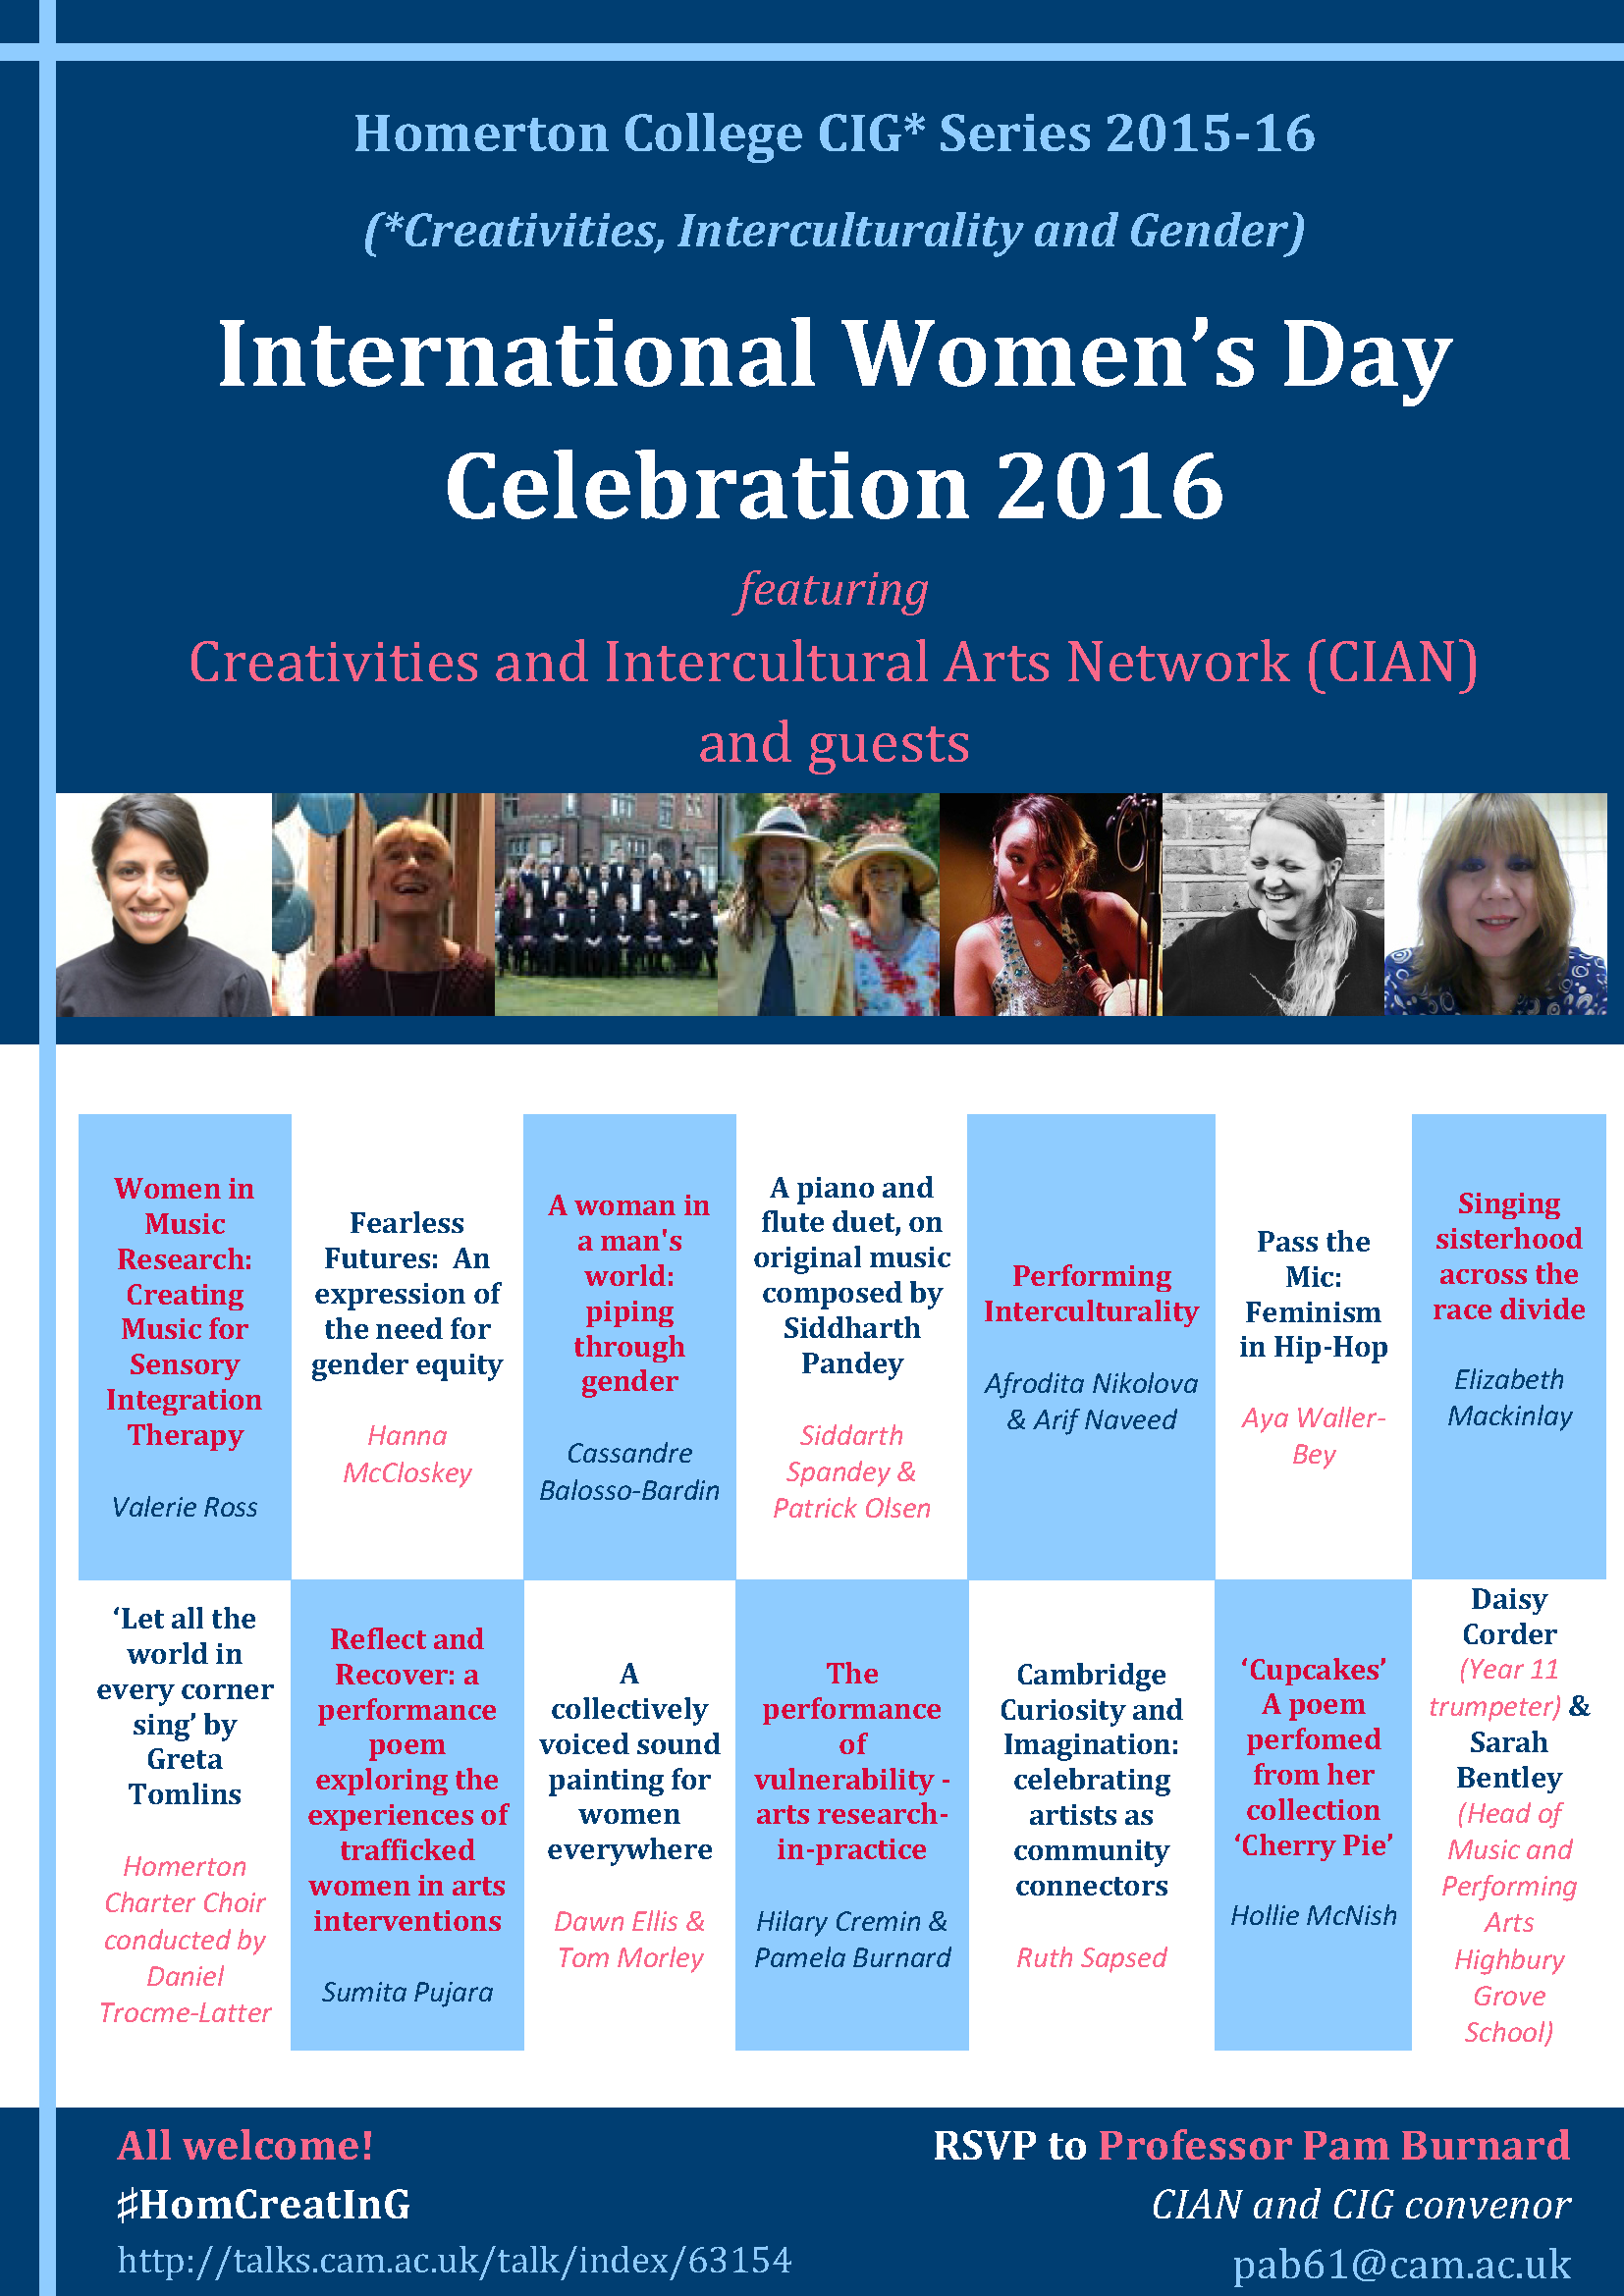 page 2 of the IWD flyer